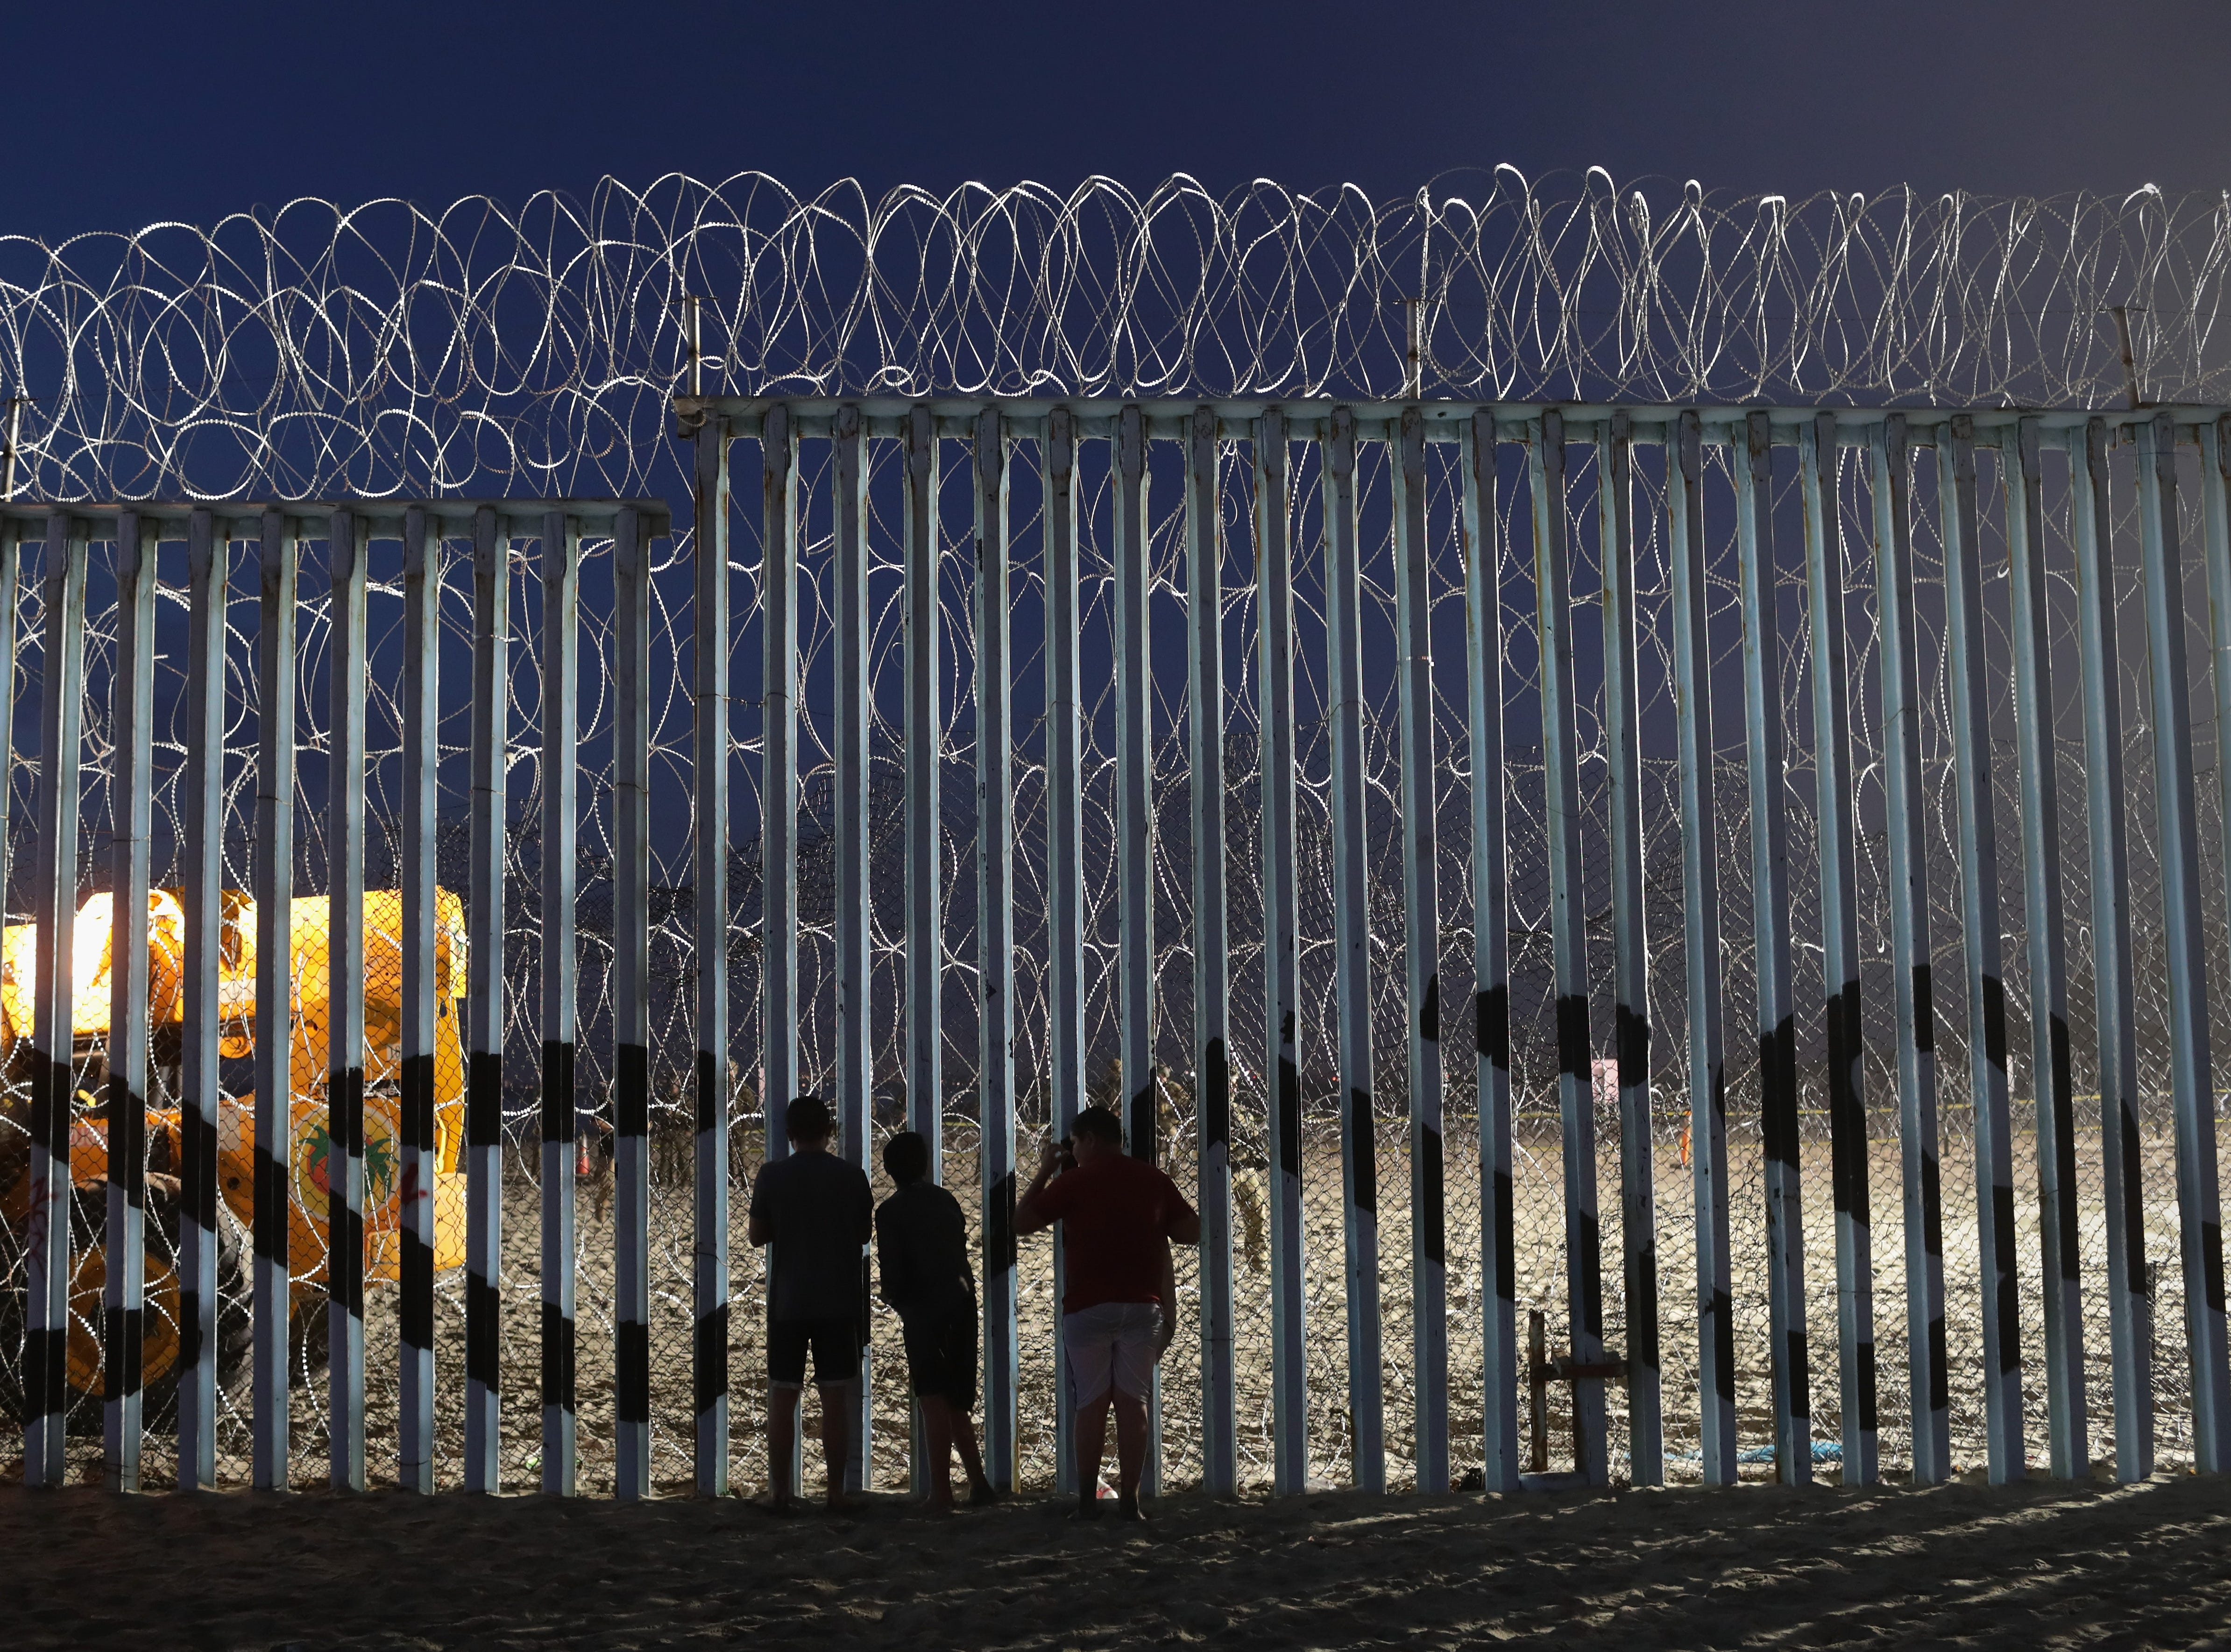 People look through the border fence on November 16, 2018 in Tijuana, Mexico. U.S. border agencies continued to fortify the fence with razor wire and additional personnel as members of the migrant caravan arrived to Tijuana across the border from San Diego.